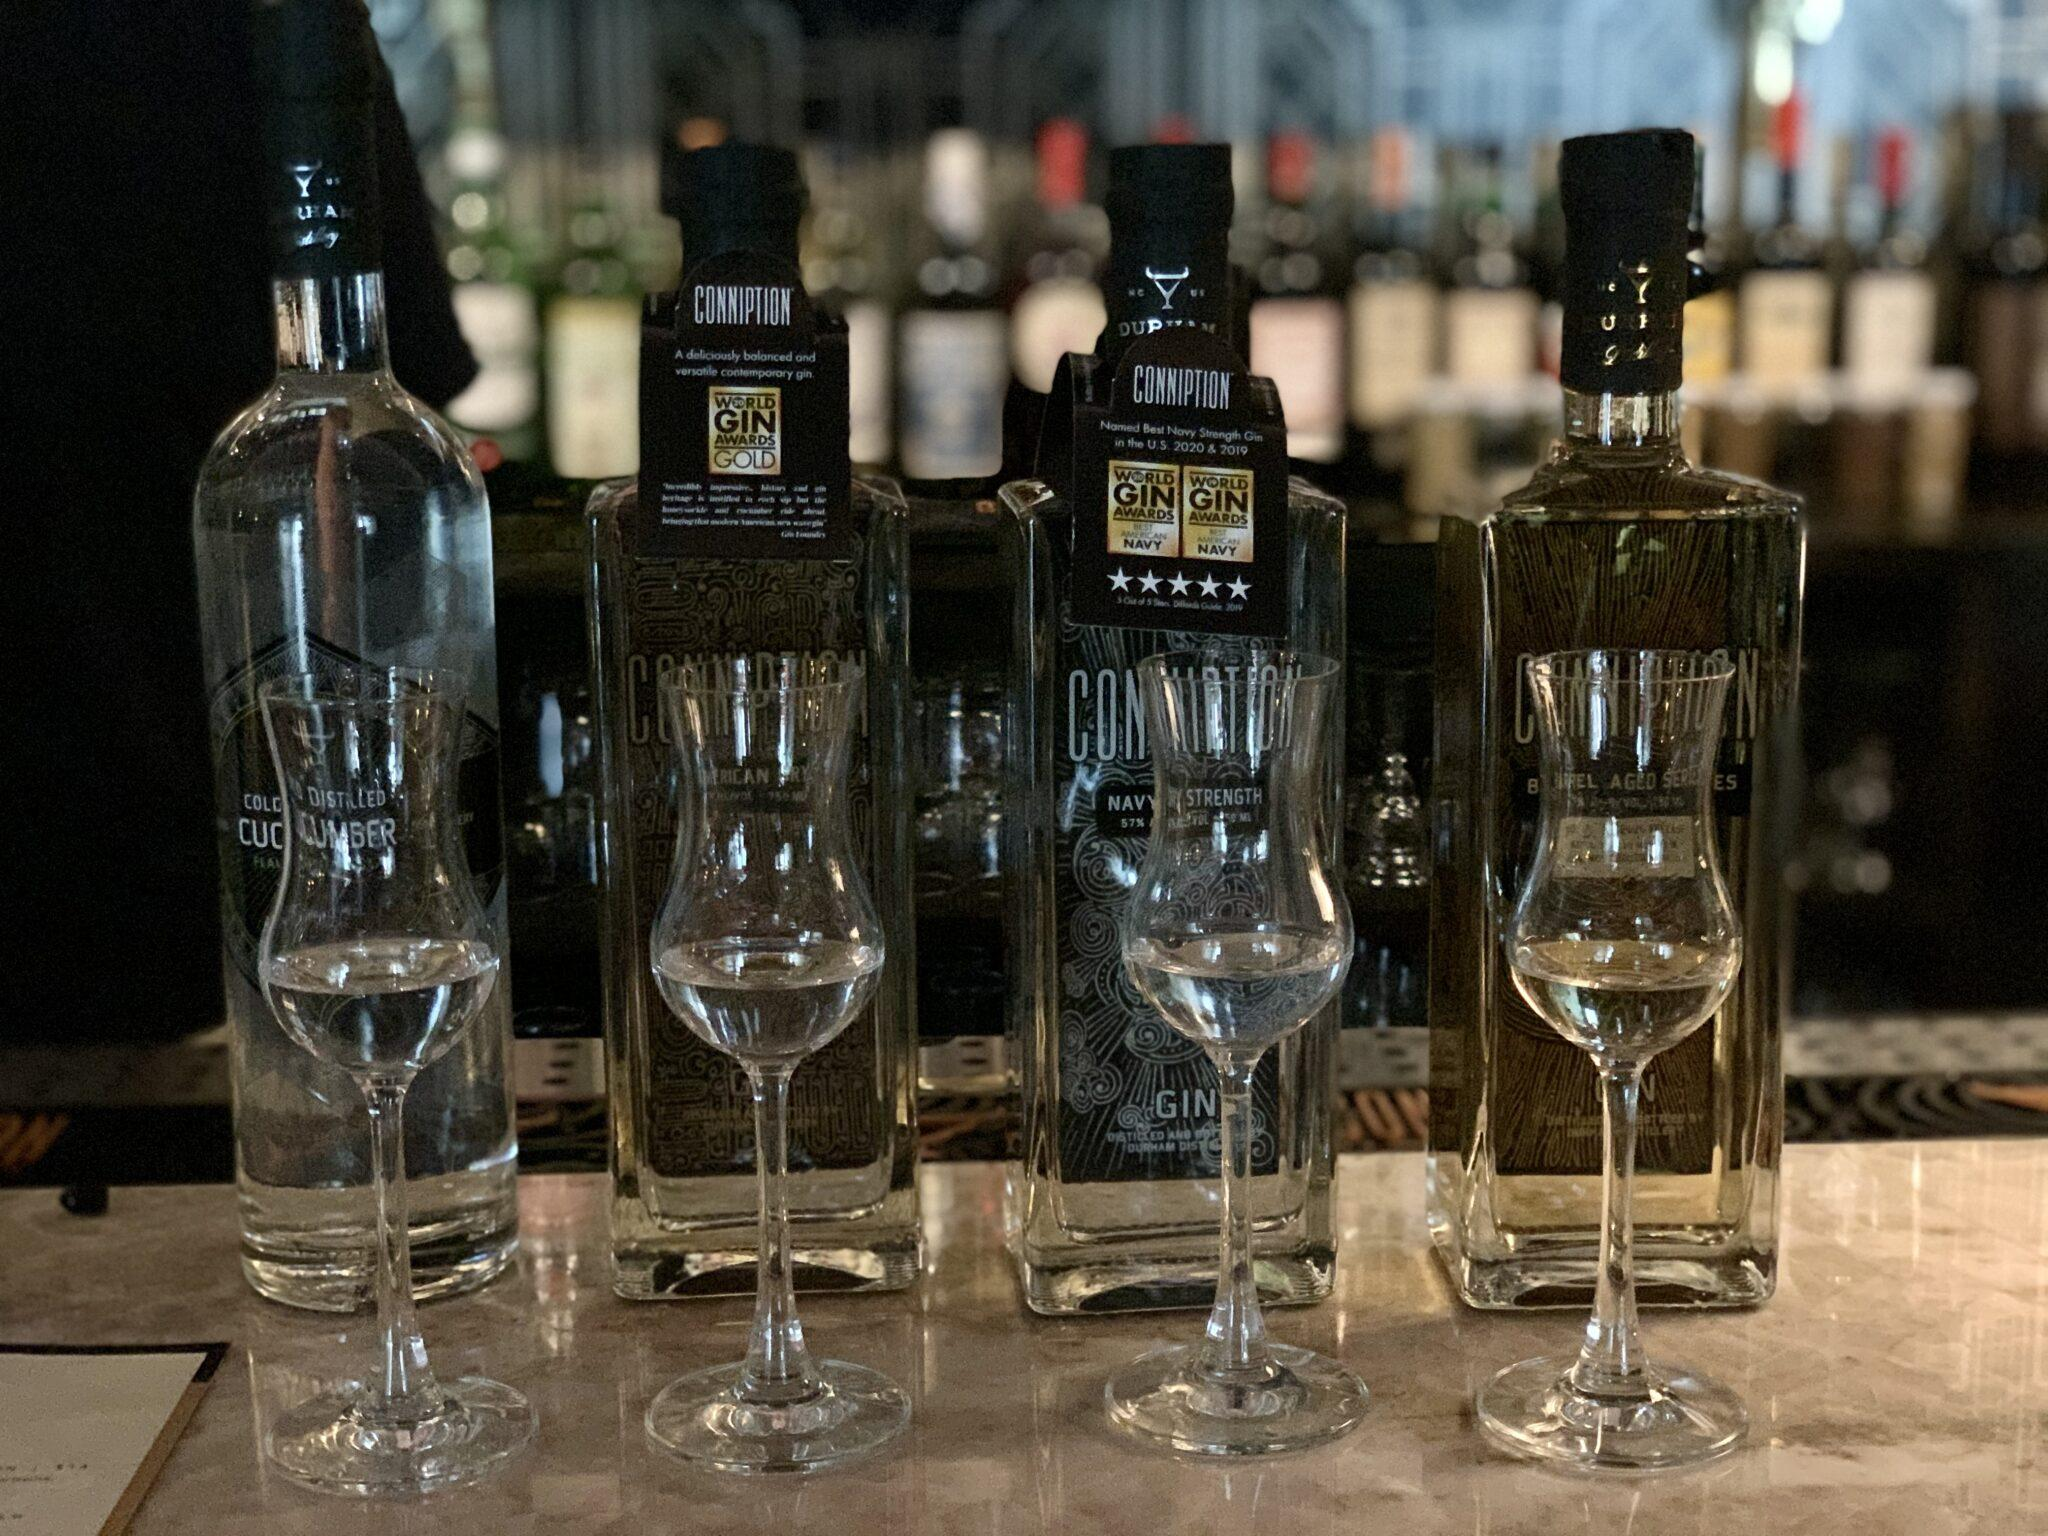 Gin lined up to taste